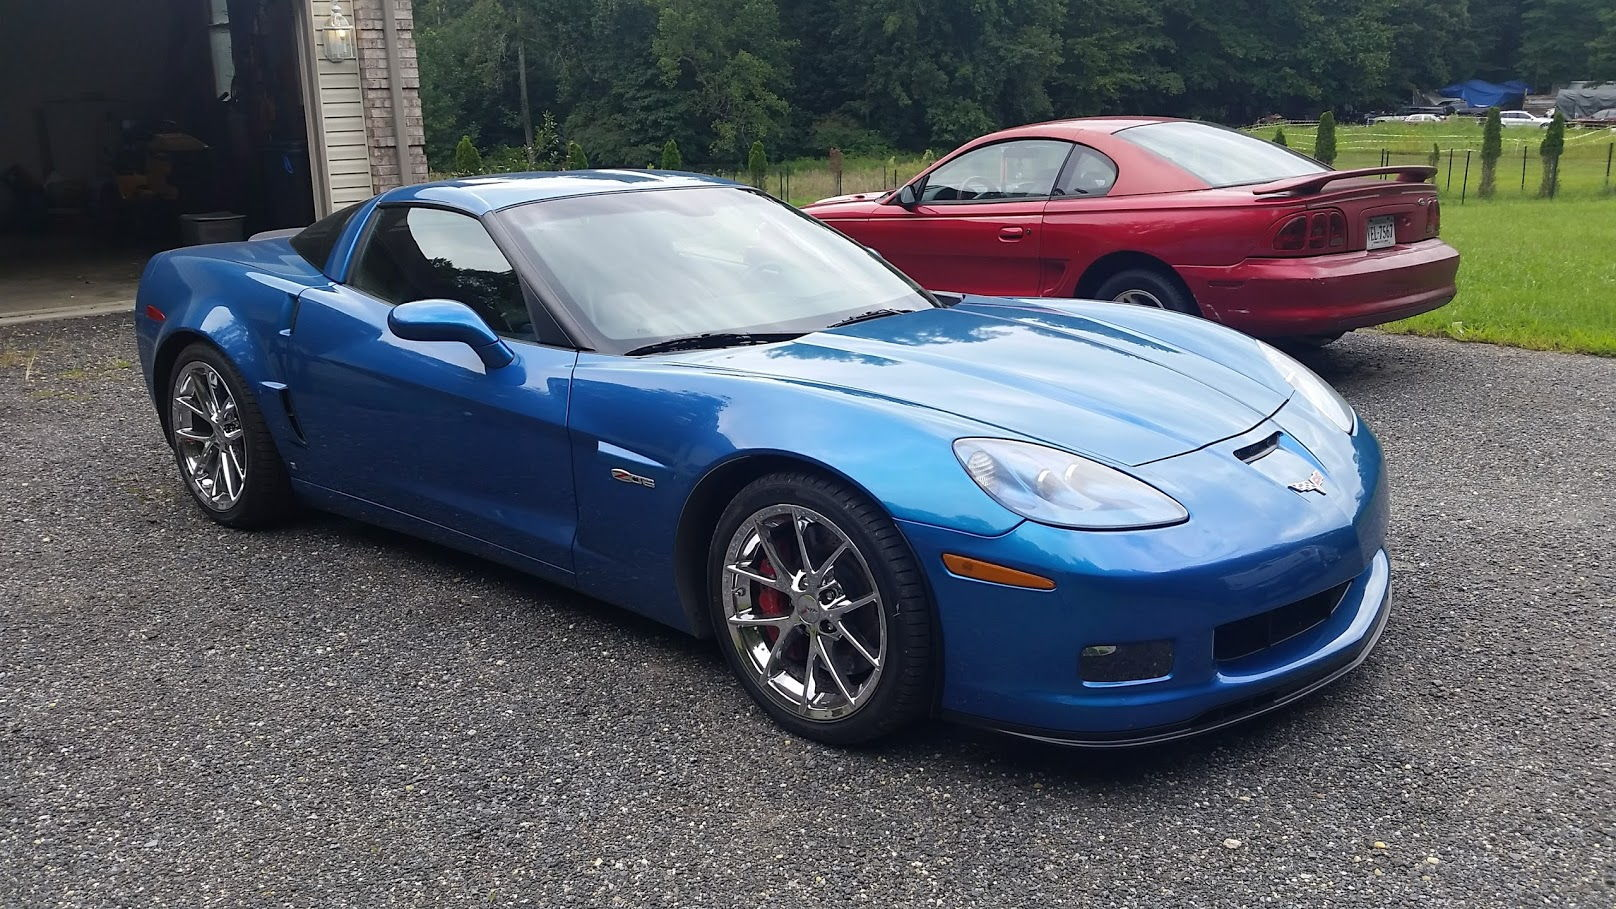 fs for sale 2008 c6 z06 jetstream blue 46k miles corvetteforum chevrolet corvette forum. Black Bedroom Furniture Sets. Home Design Ideas